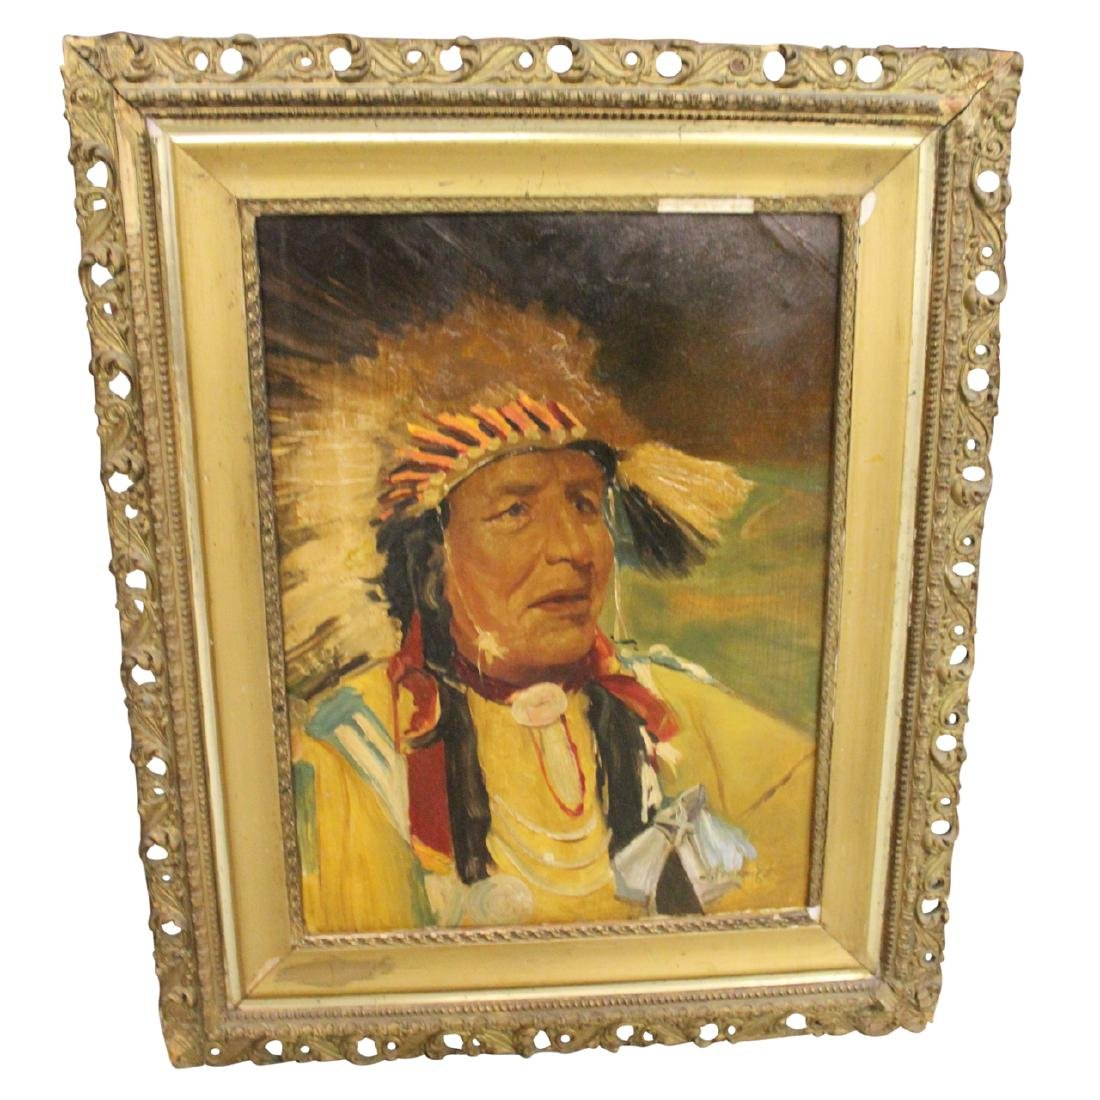 Painting on Board of an Indian Chief